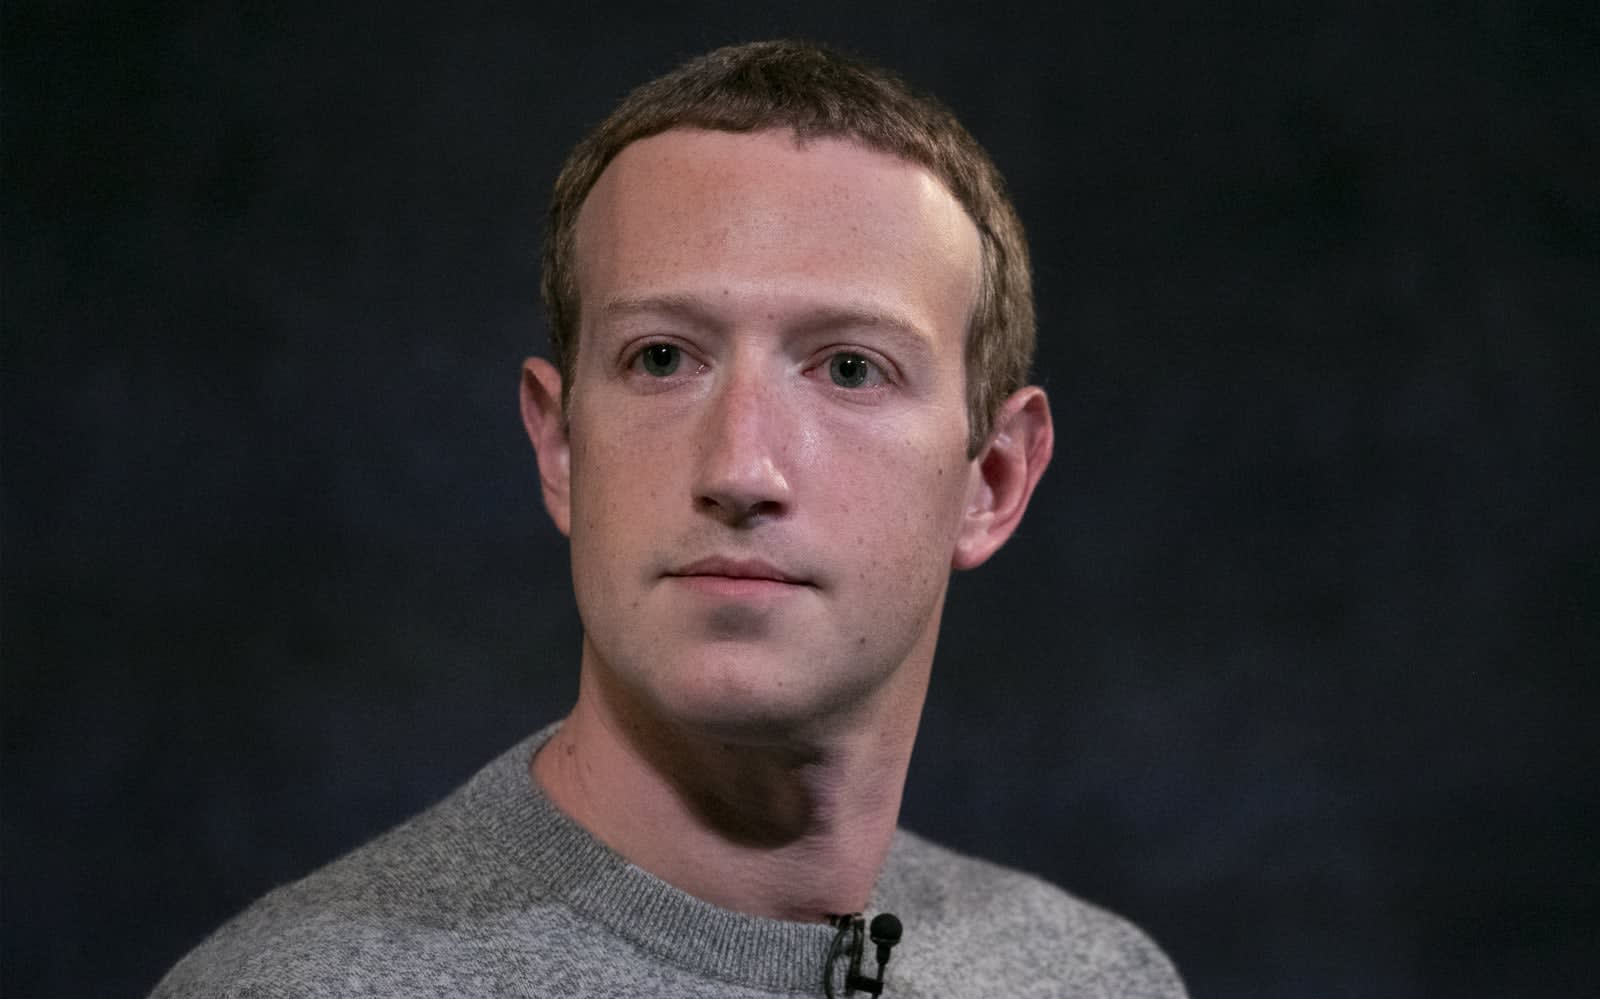 Hundreds of employees criticize Facebook's political ad policies